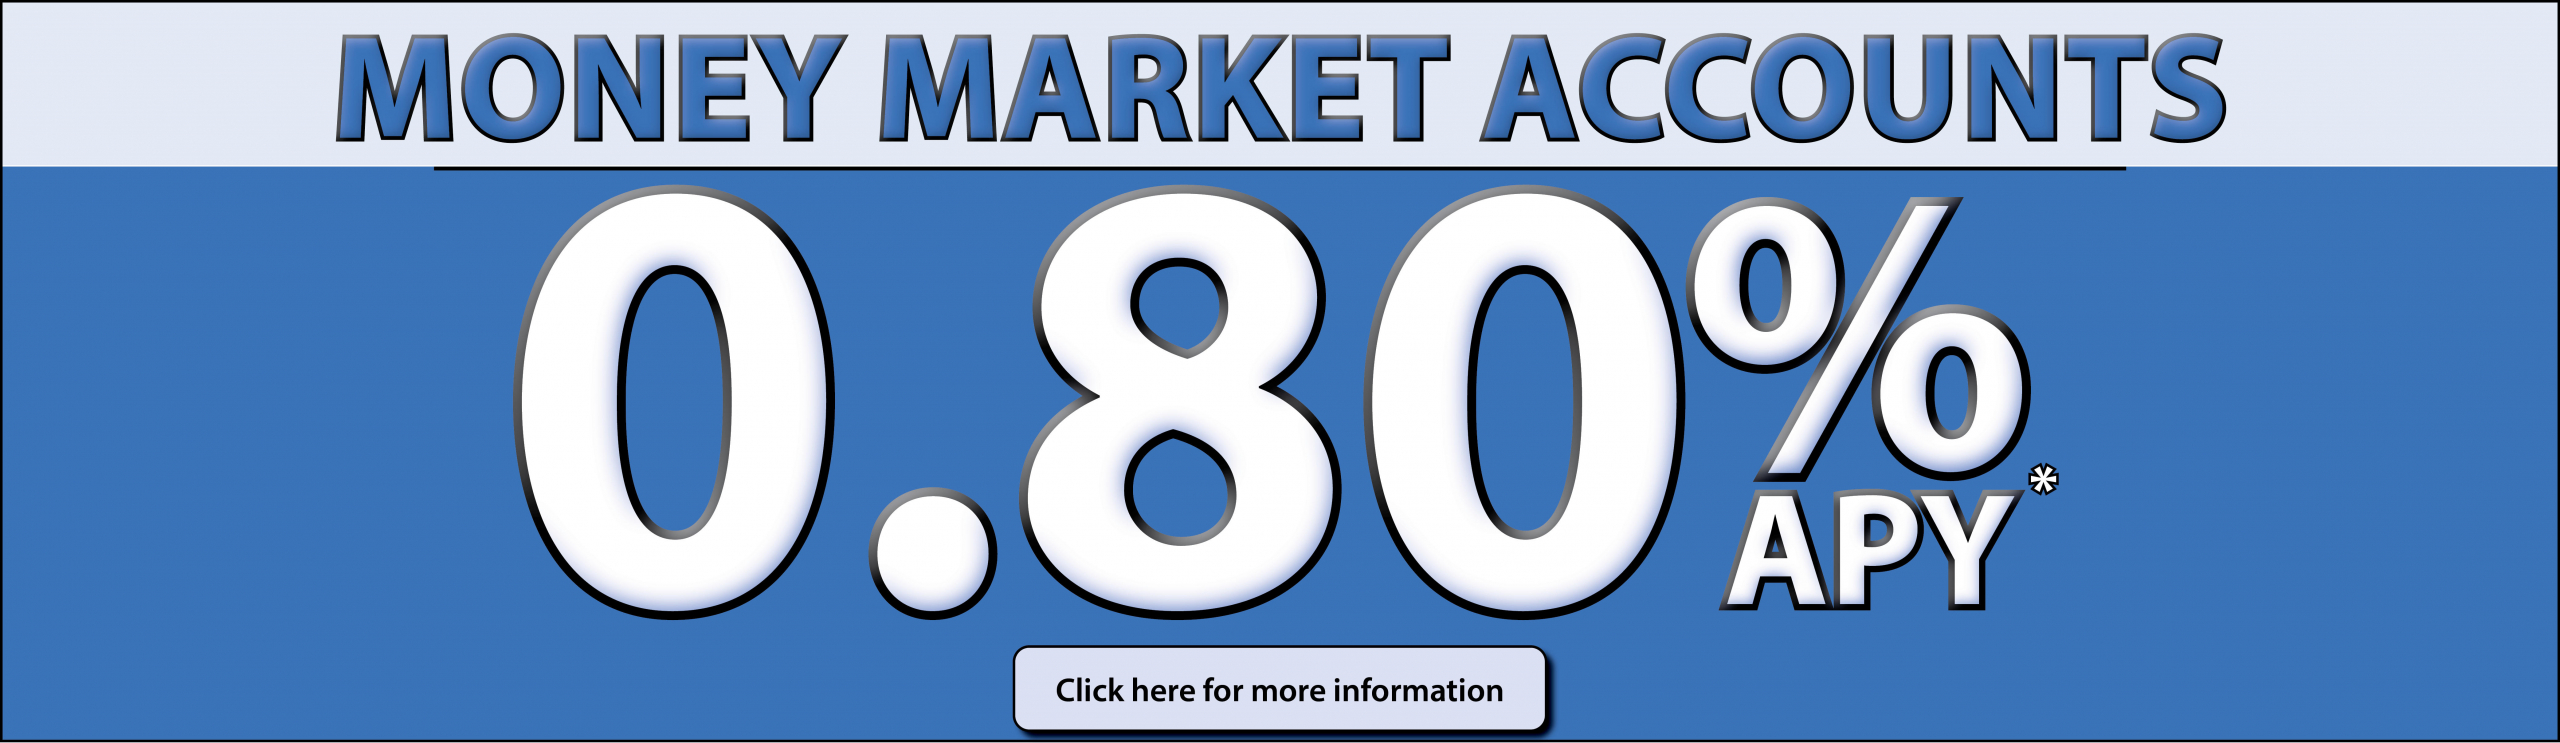 Money Market Accounts - 0.80%APY*